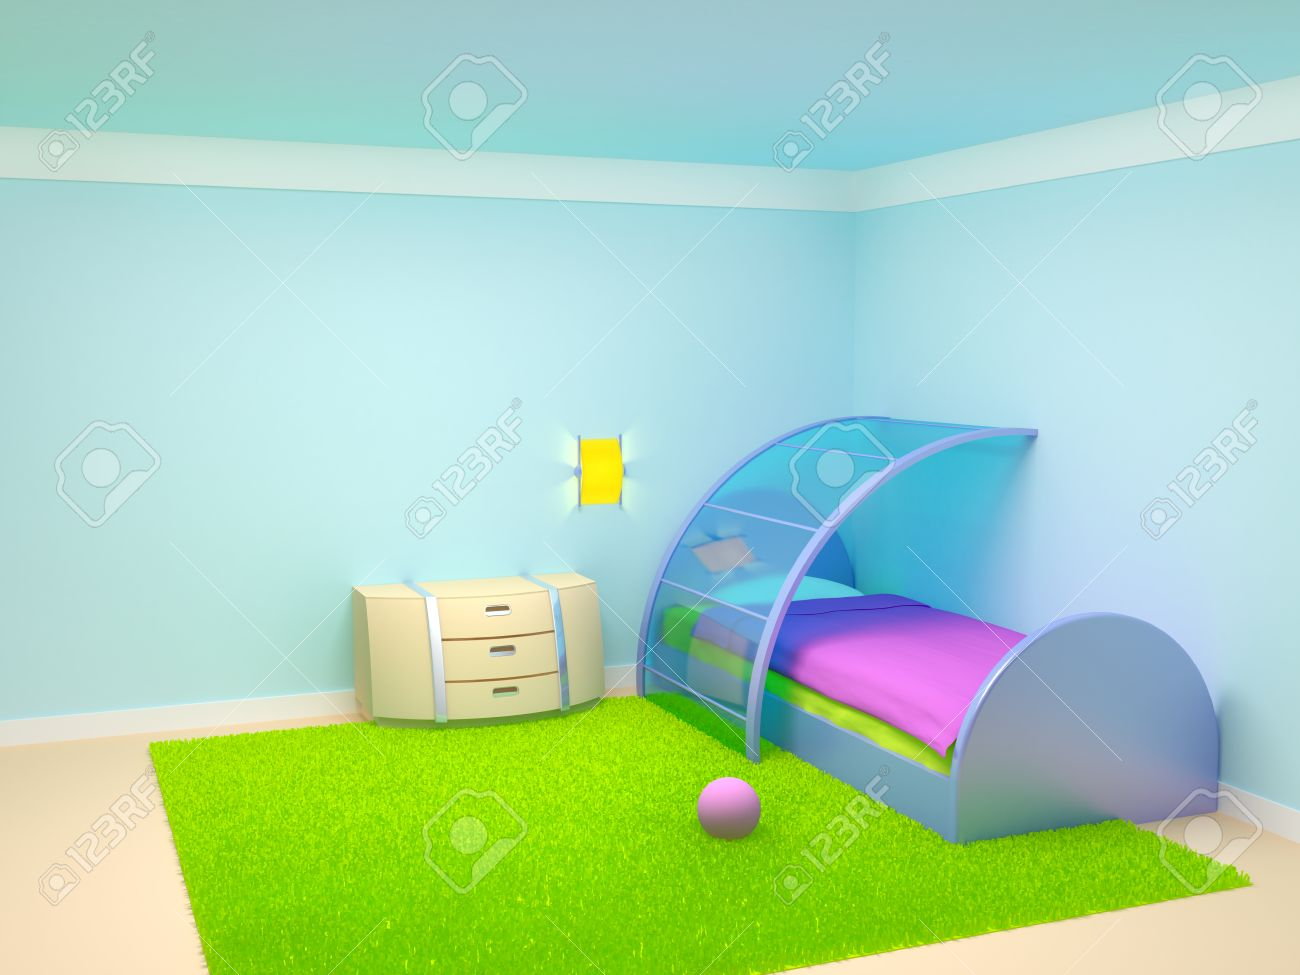 Futuristic bedroom furniture - Futuristic Child Bedroom With Metal Furniture Empty Room Stock Photo 23570114